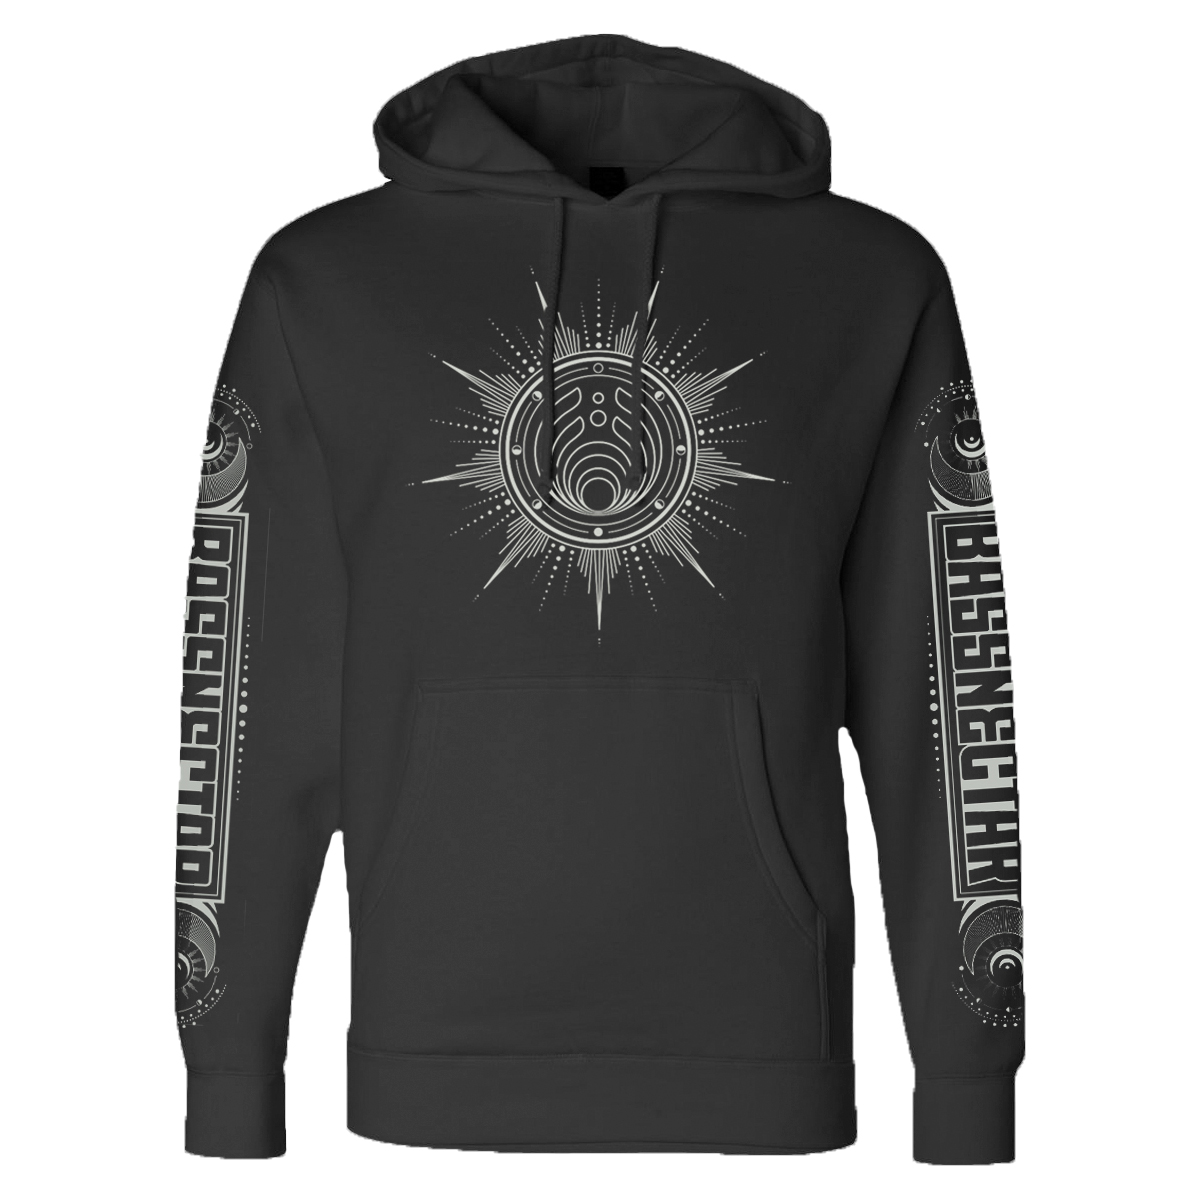 Break the Unbreakable Hoodie